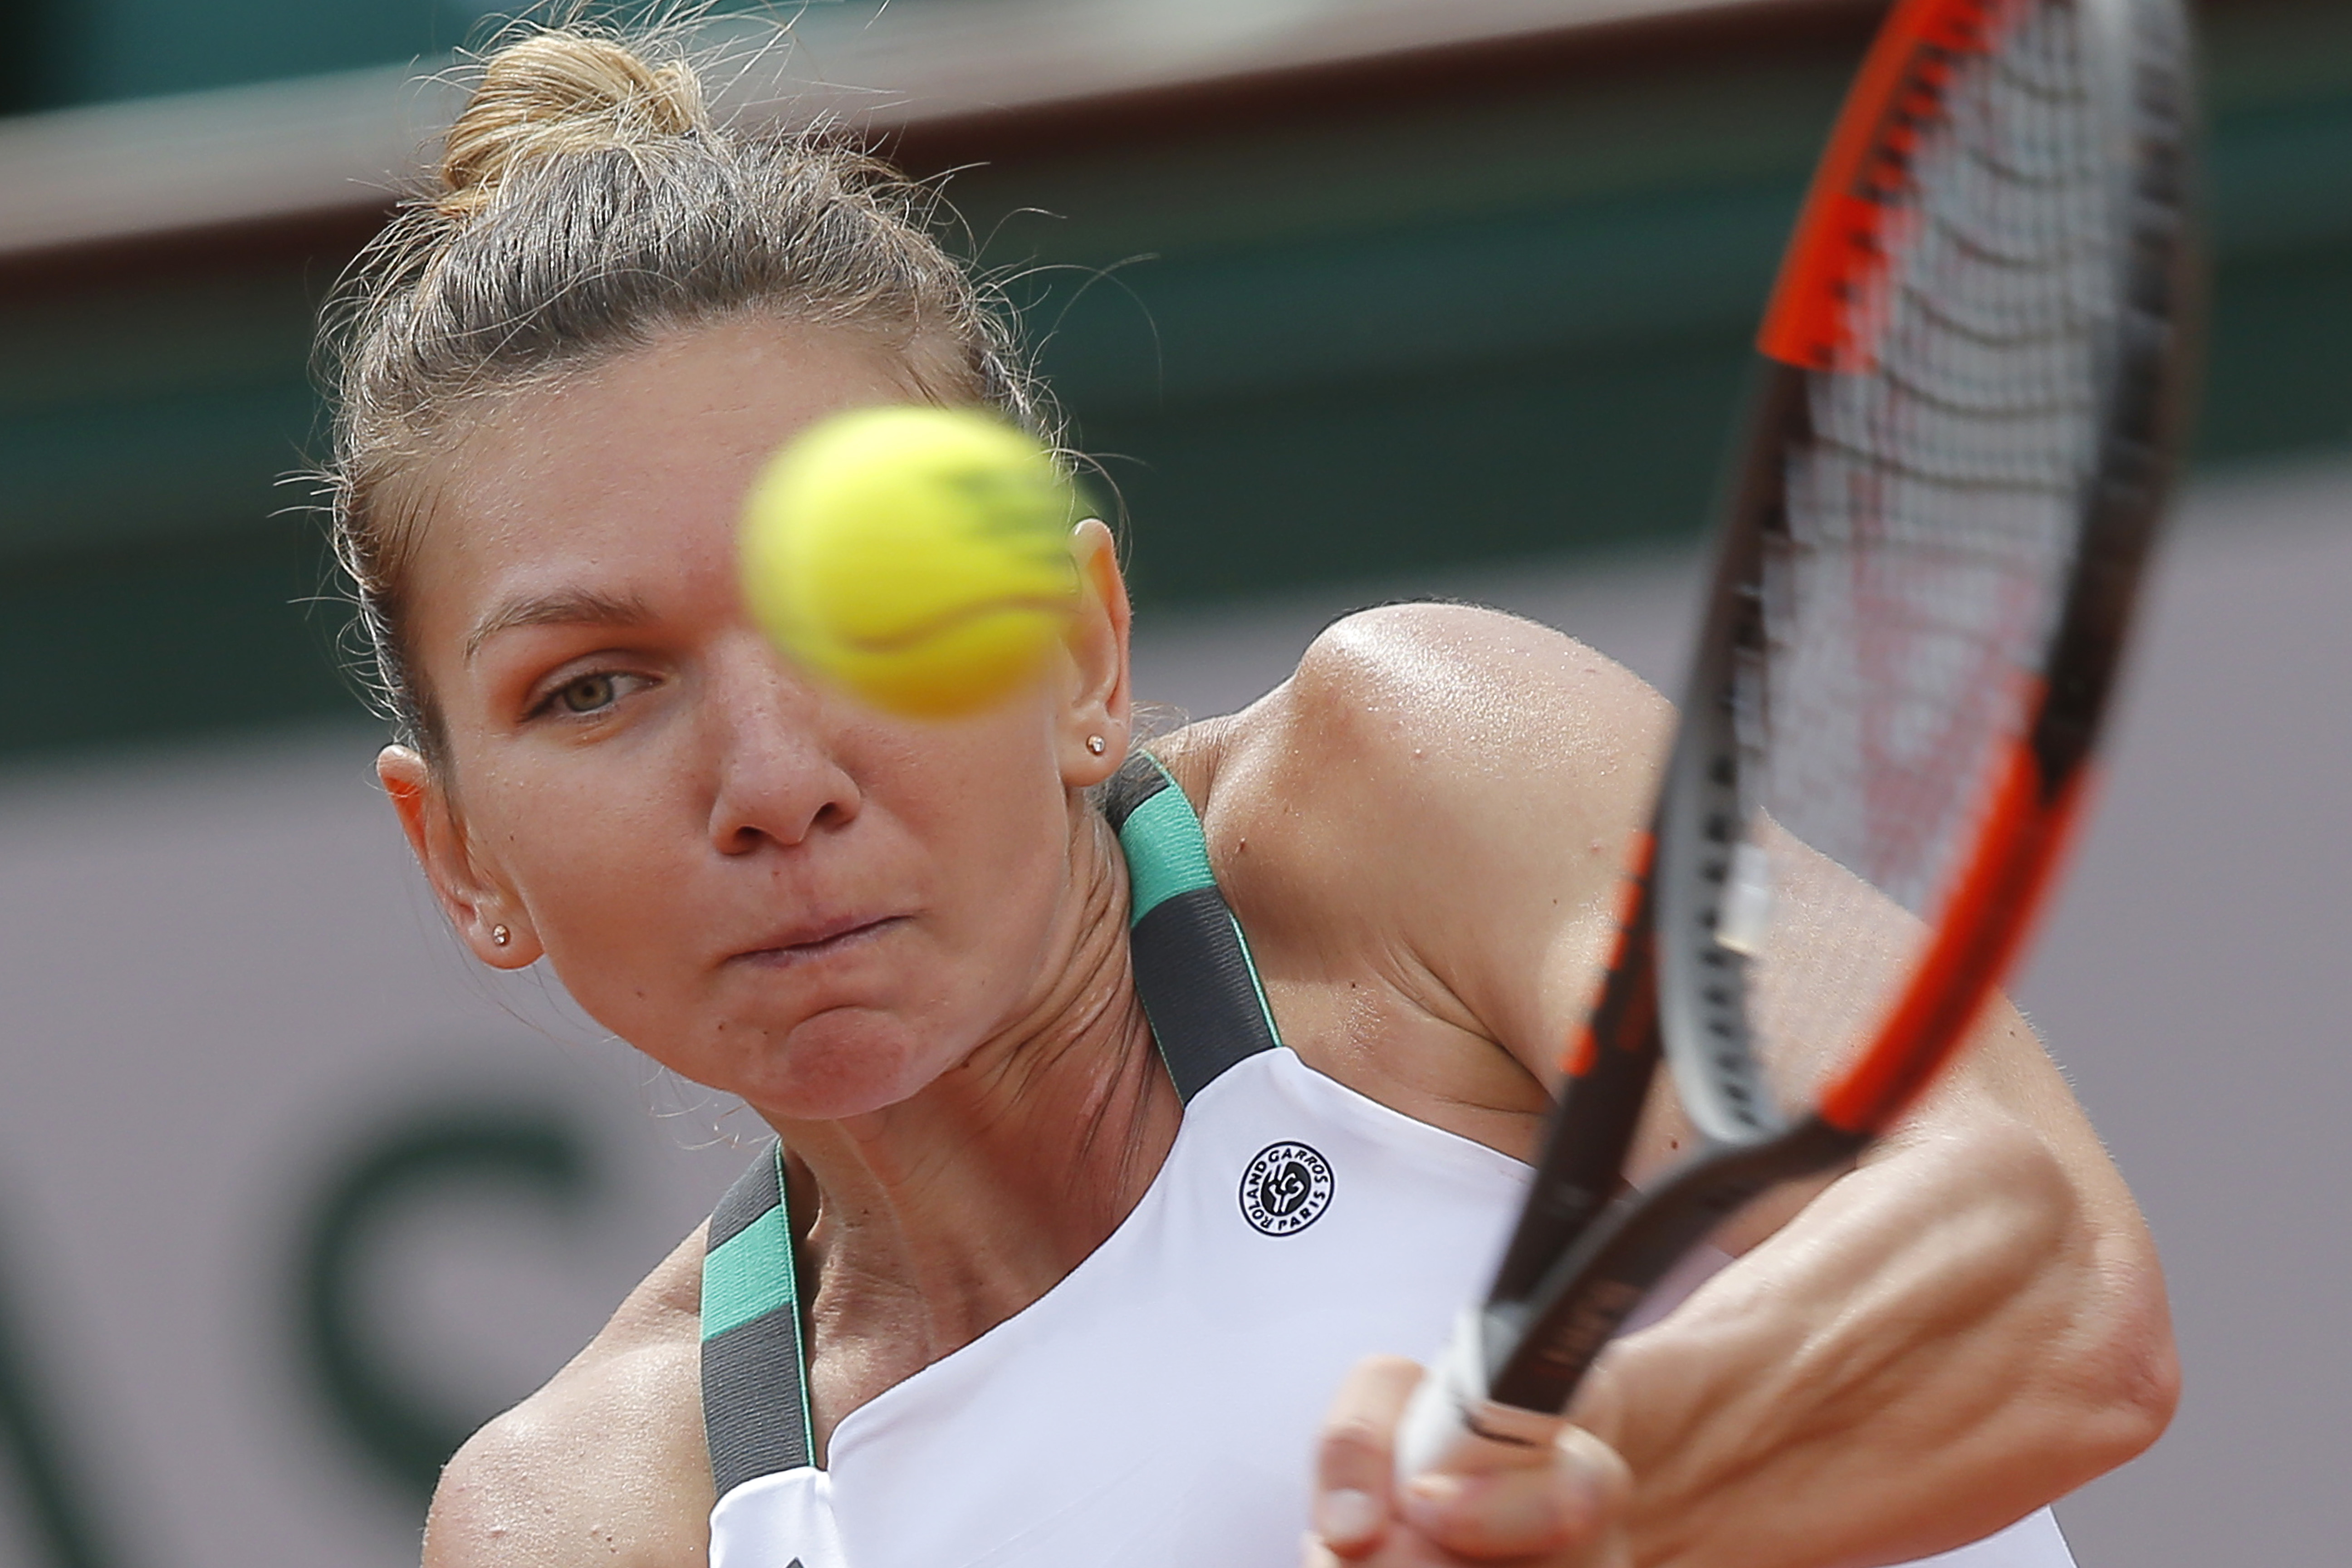 Romania's Simona Halep plays a shot against Spain's Carla Suarez Navarro during their fourth round match of the French Open tennis tournament at the Roland Garros stadium, in Paris, France. Monday, June 5, 2017. (AP Photo/Michel Euler)